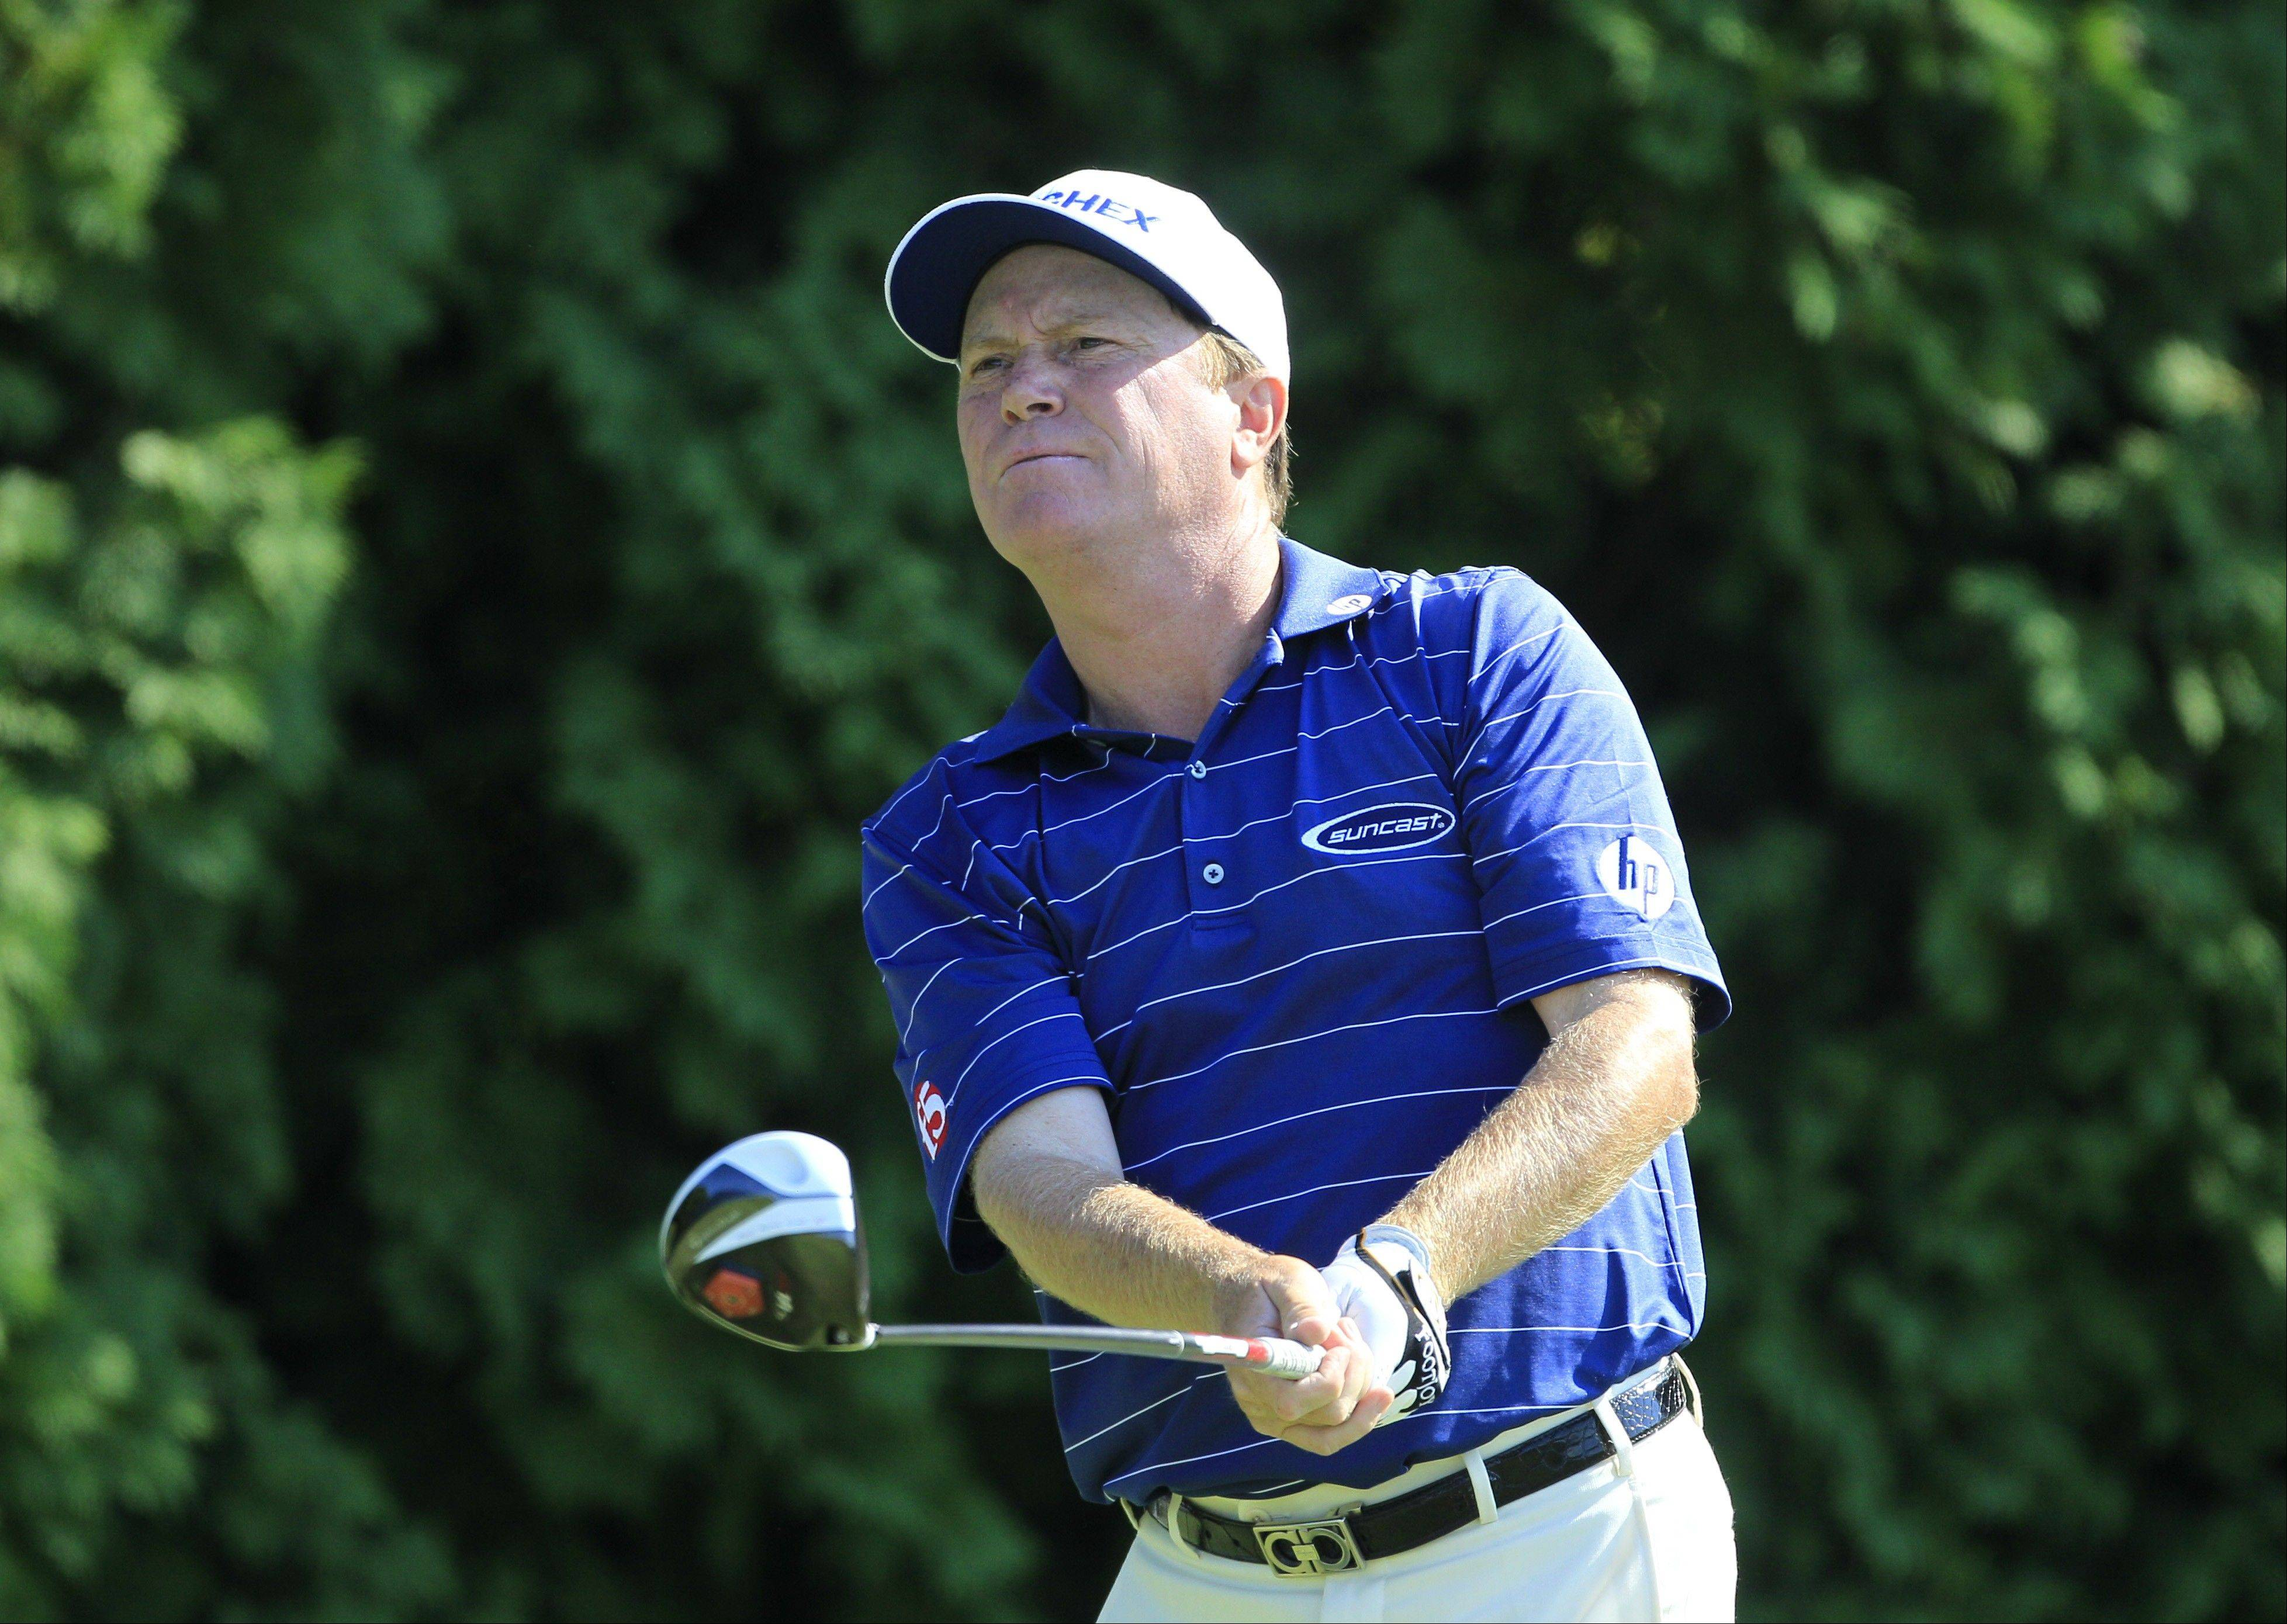 Jeff Sluman, one of the key players behind the Champions Tour's return to Chicago next season, also has a big role in next month's Ryder Cup at Medinah Country Club. Sluman, a vice captain for Team USA, expects the course to be in terrific shape for the Ryder Cup.